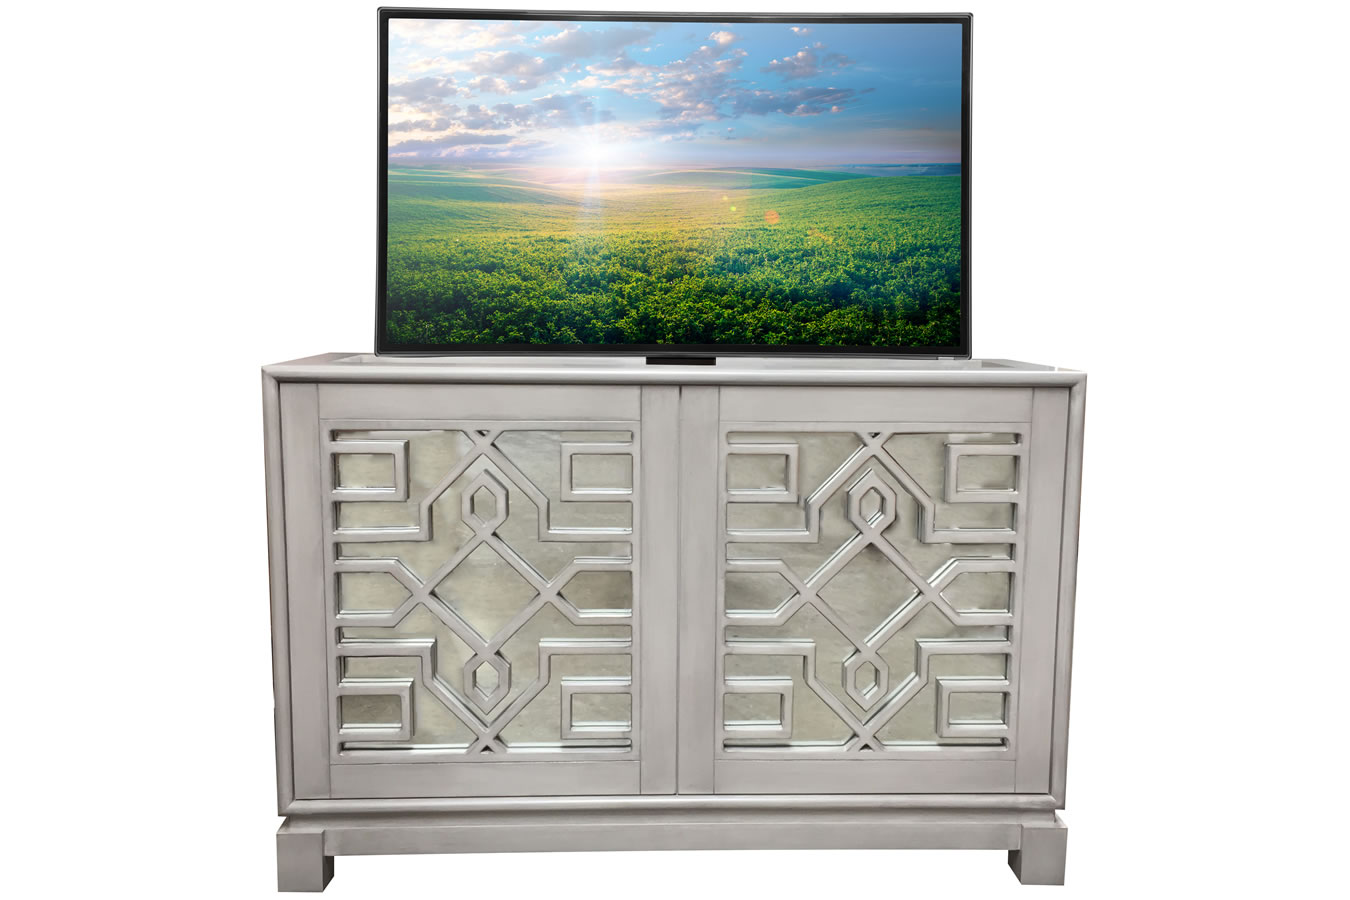 Lili Mirrored Buffet TV Lift Cabinet with Hidden TV